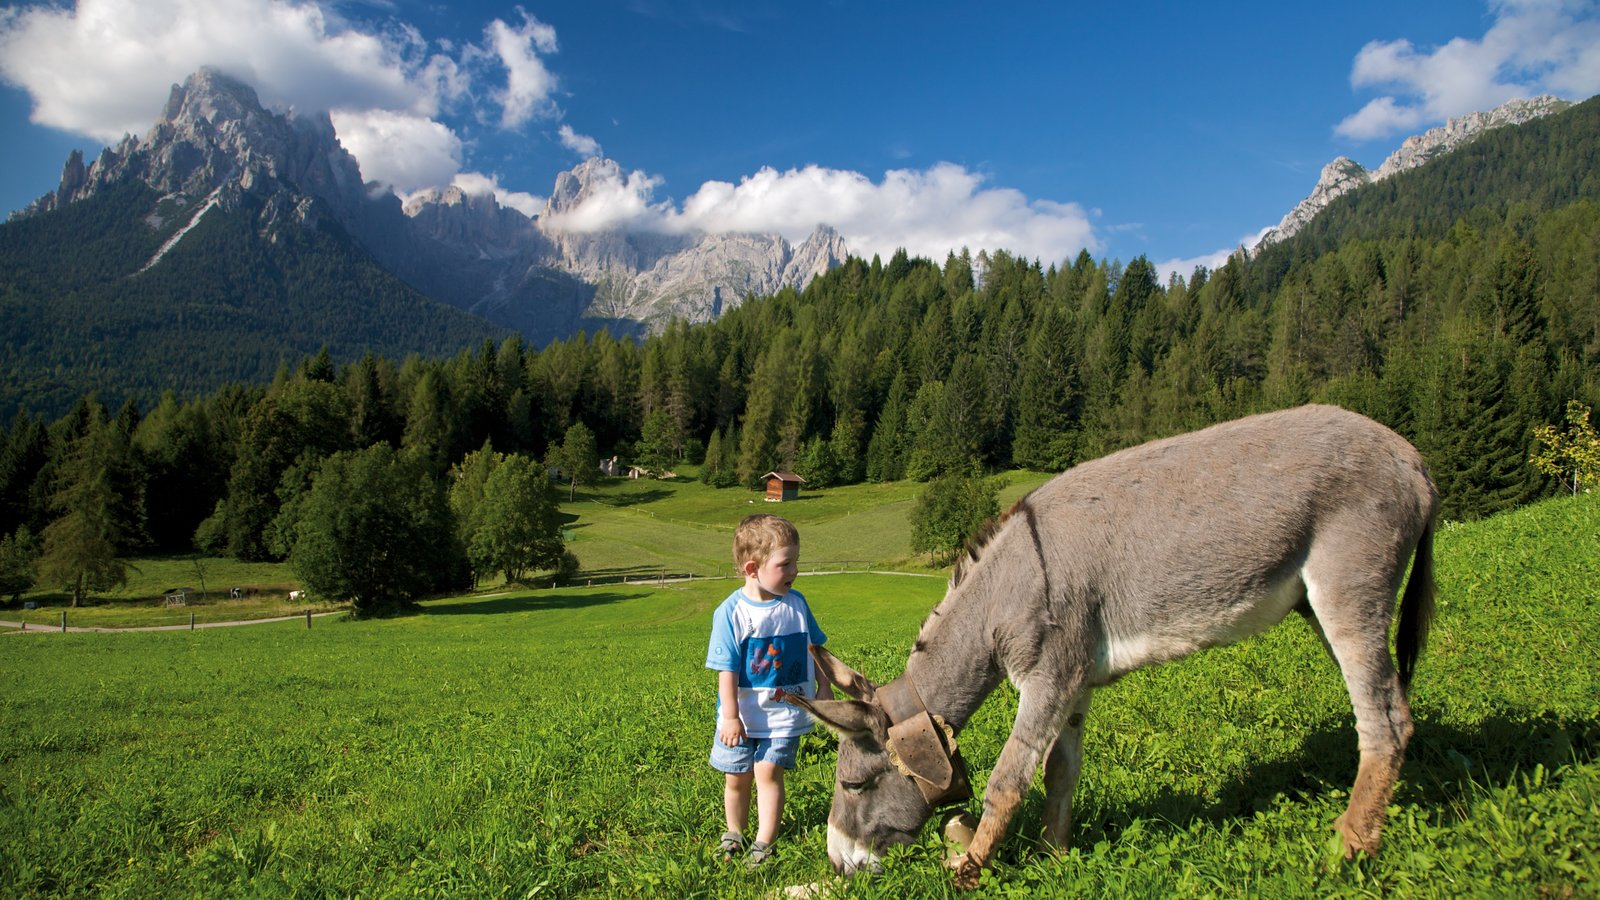 Trentino showing cuddly or friendly animals, forests and landscape views